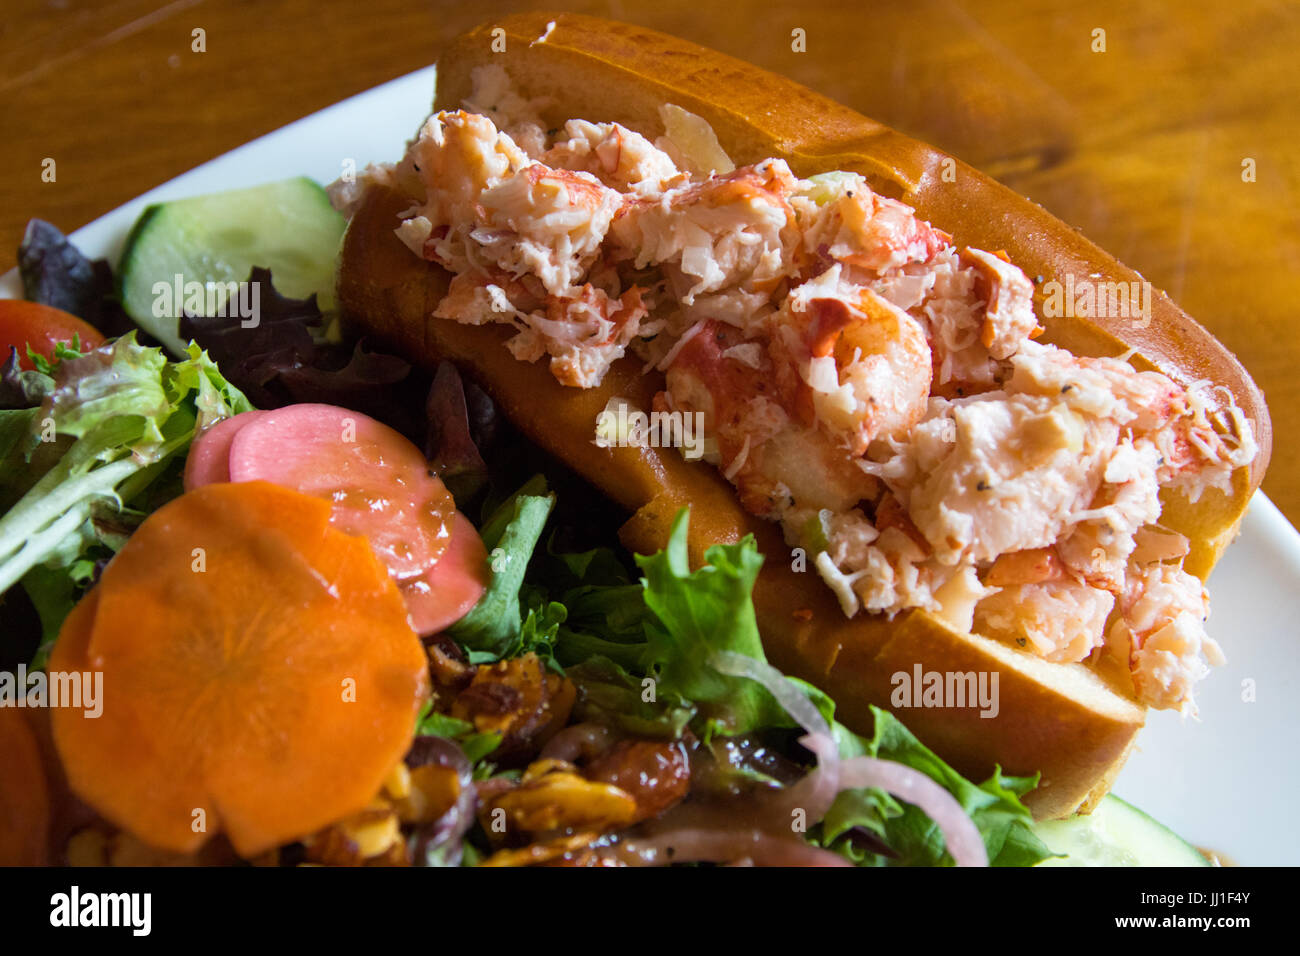 Lobster Roll Stock Photos & Lobster Roll Stock Images - Alamy